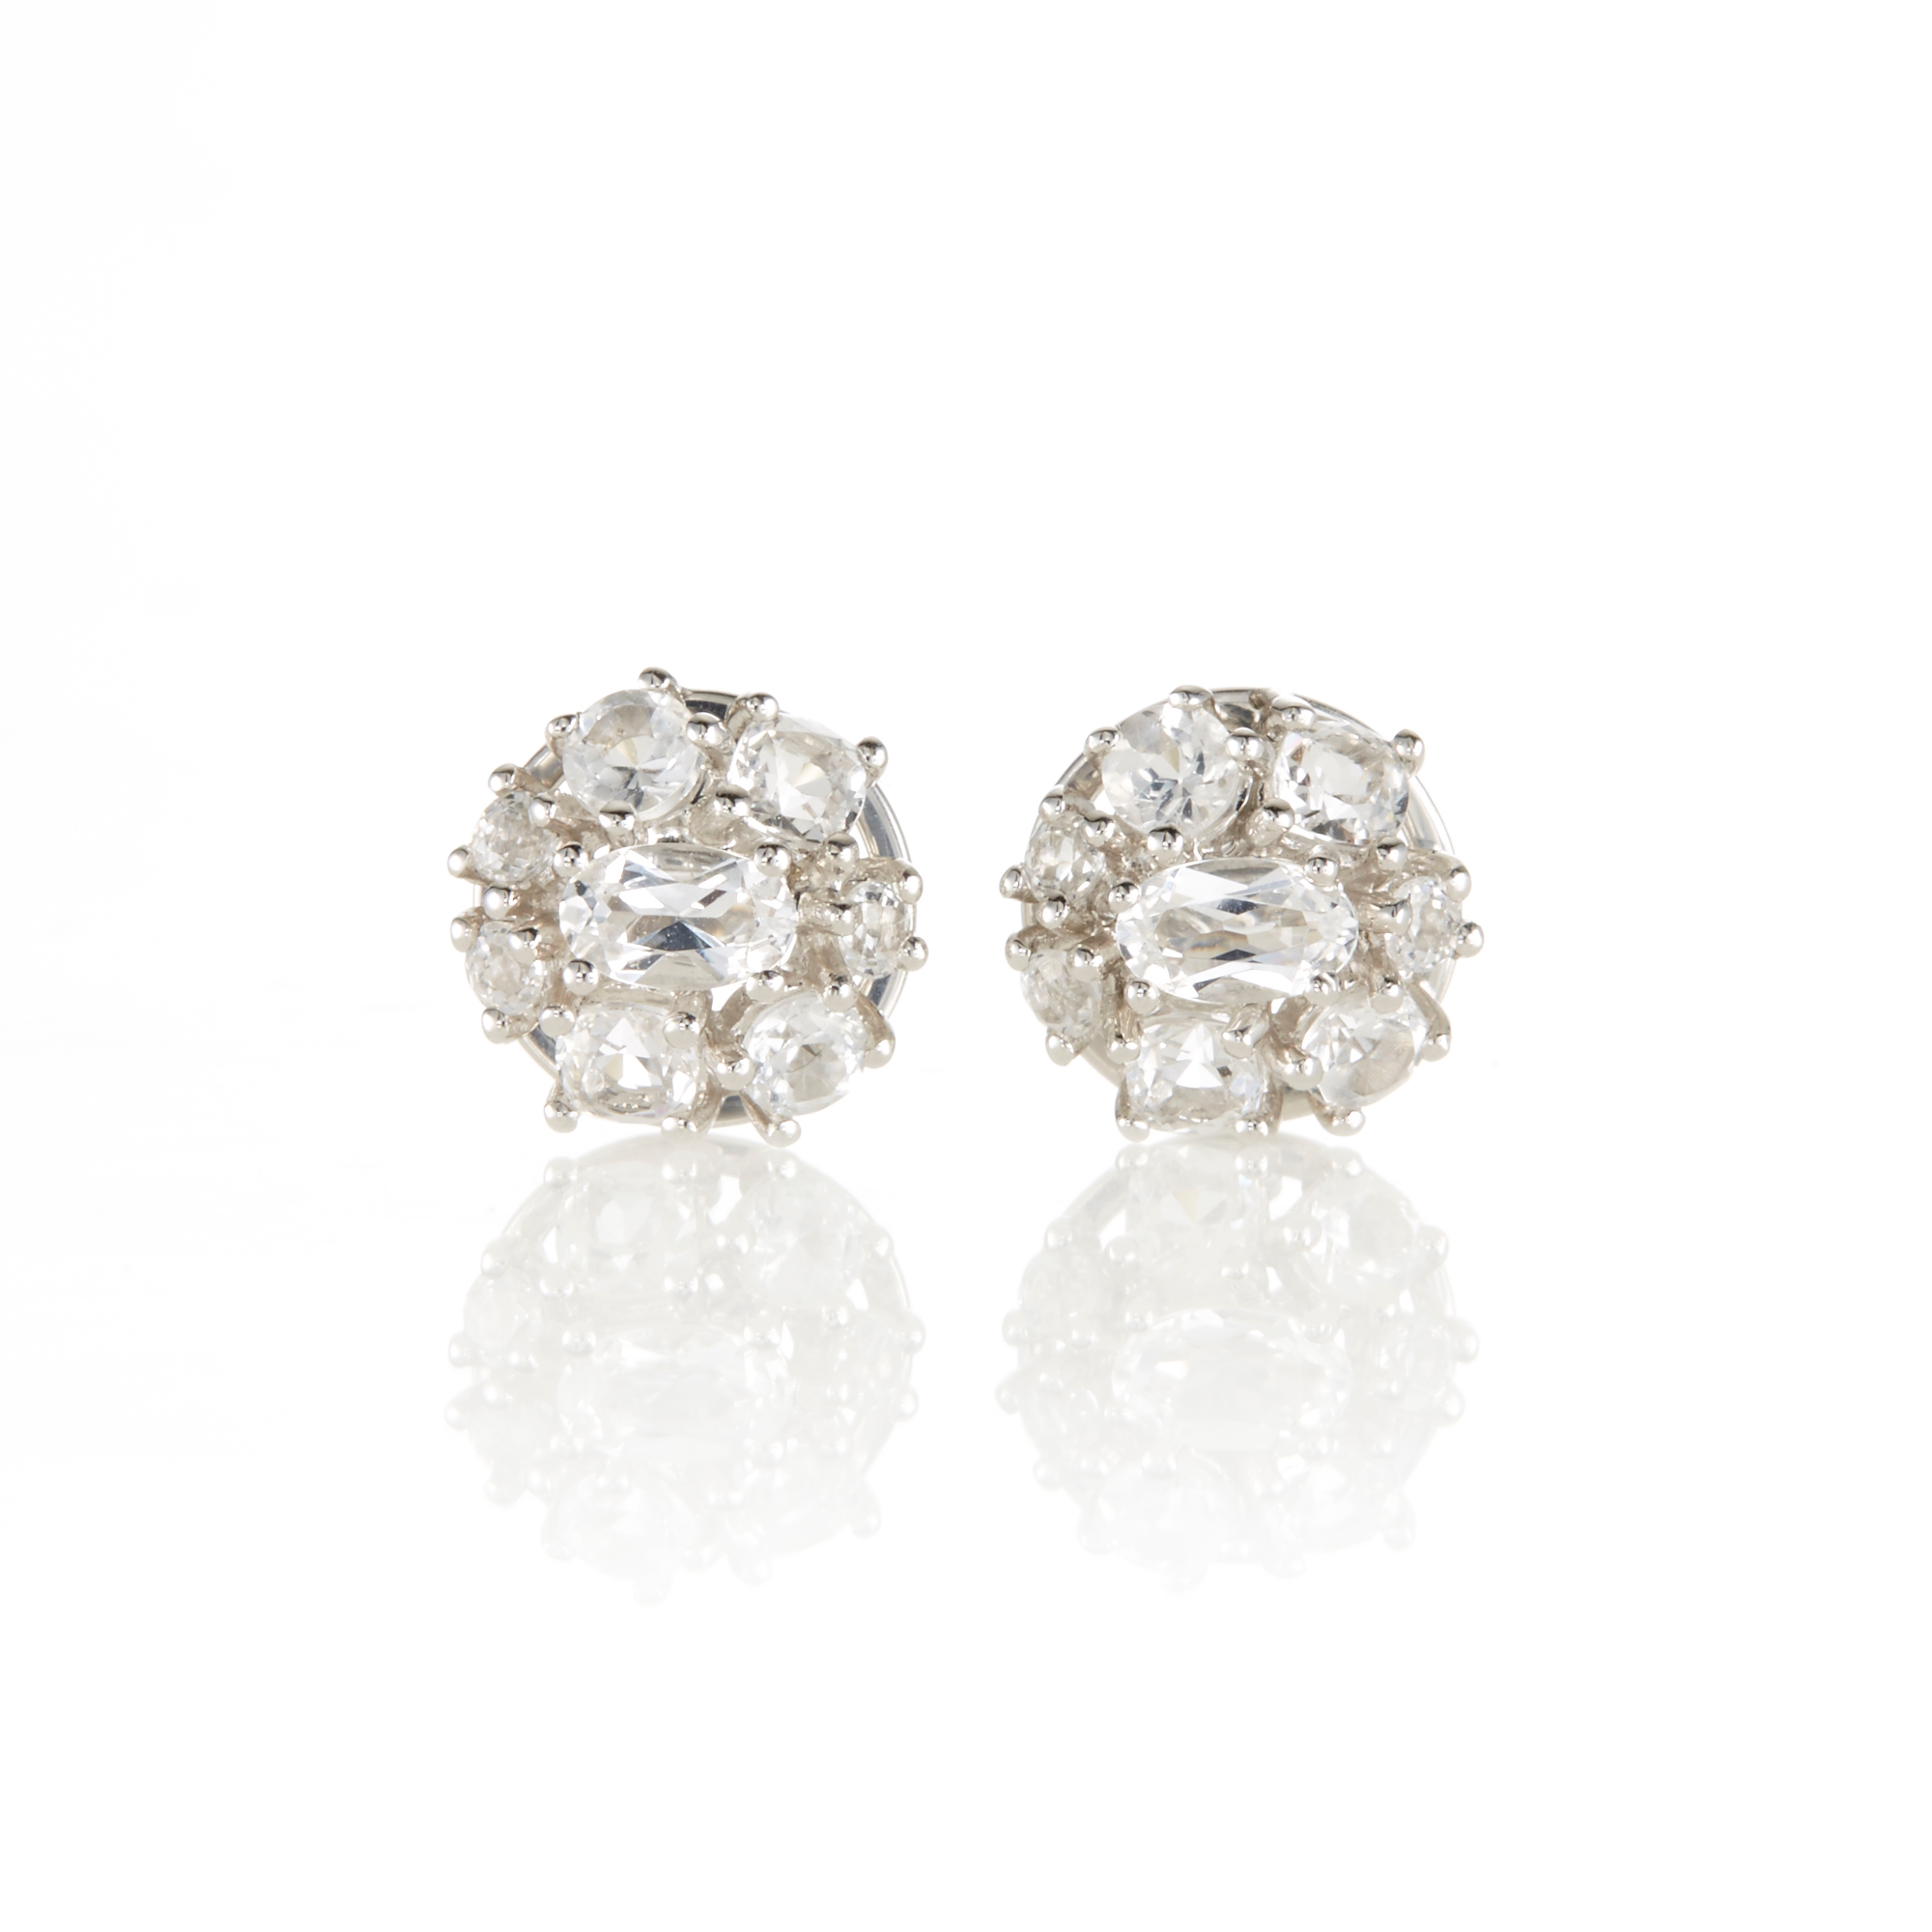 Gump's White Topaz Cluster Stud Earrings